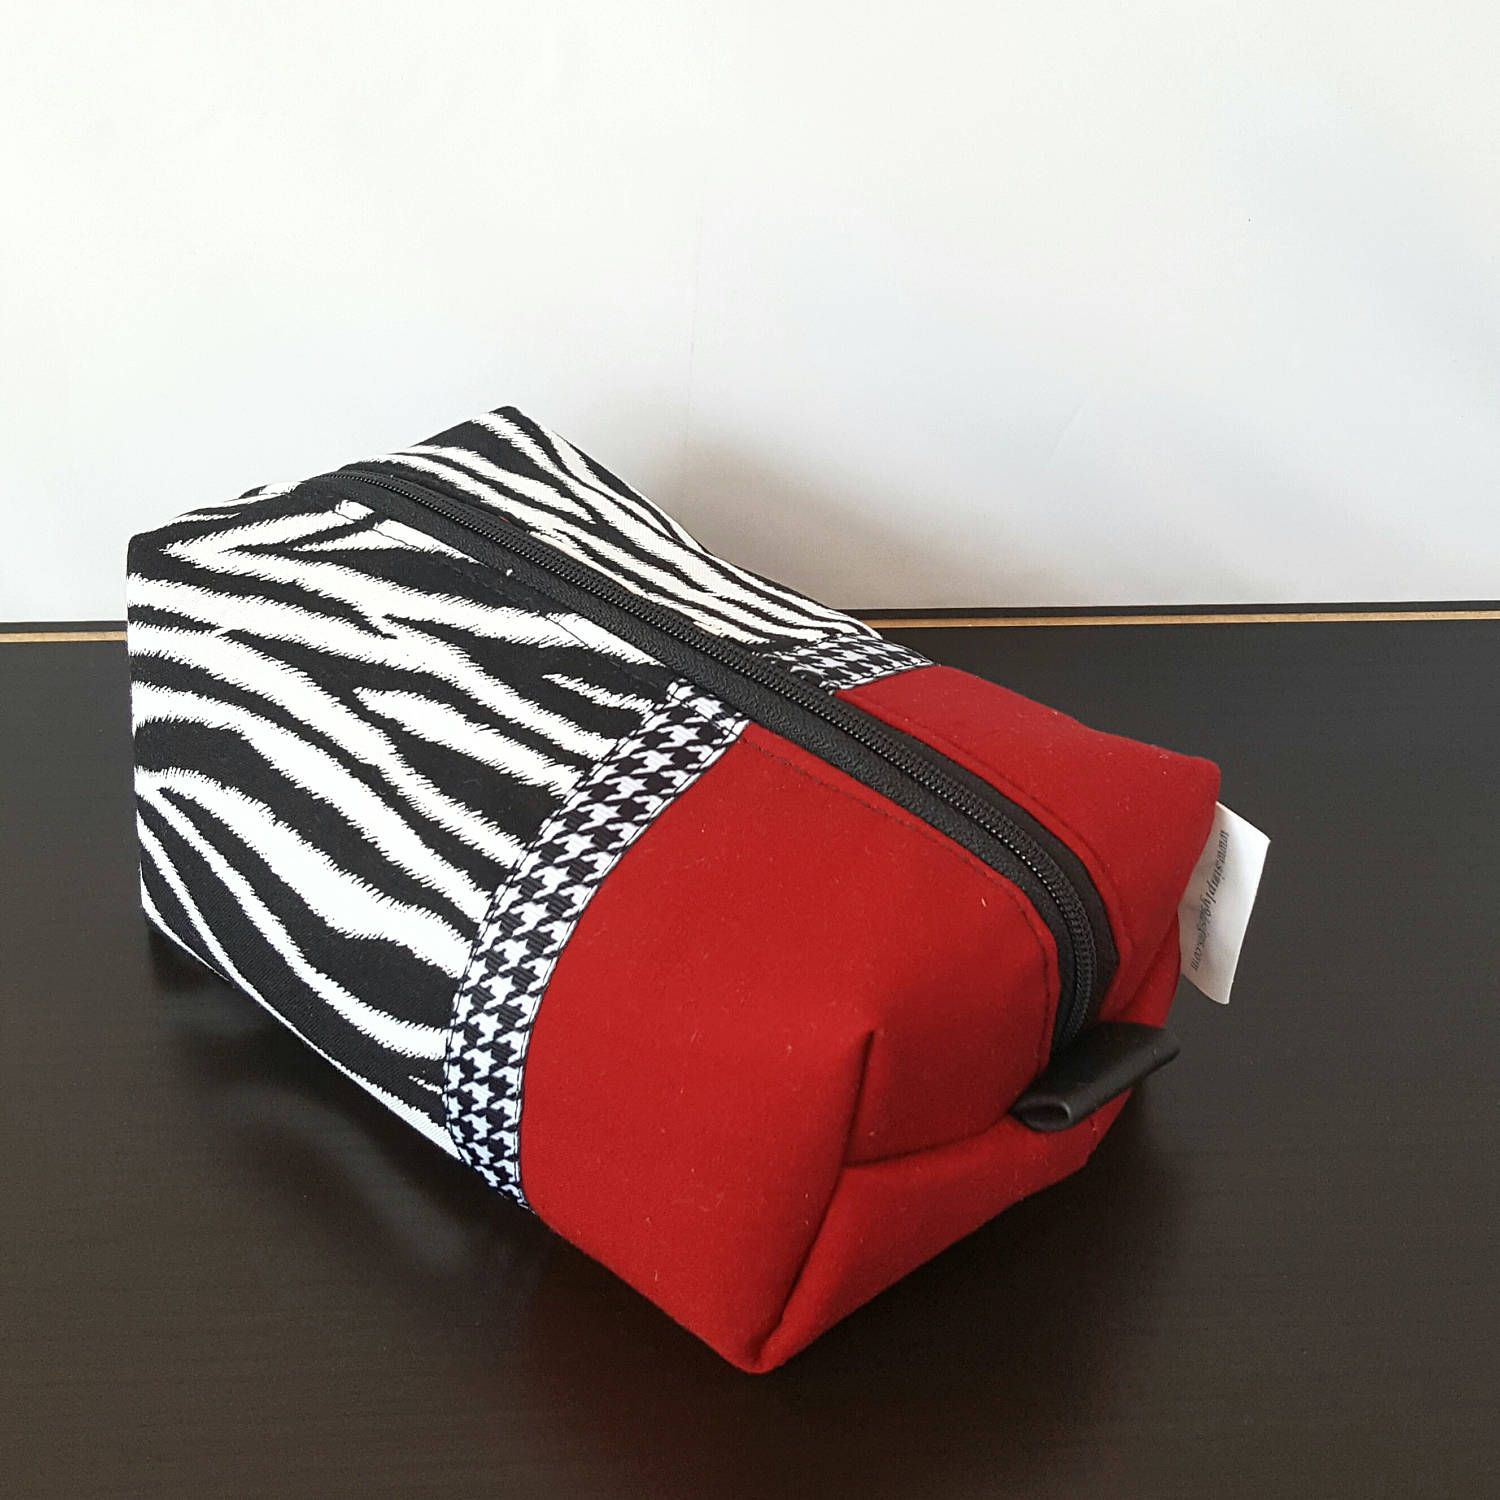 Cosmetics black leather gloves lyrics - Zebra Red White Black Makeup Bag Black Faux Leather Cosmetic Bag Toiletry Bag Large Makeup Bag Personalized Mothers Day Gift